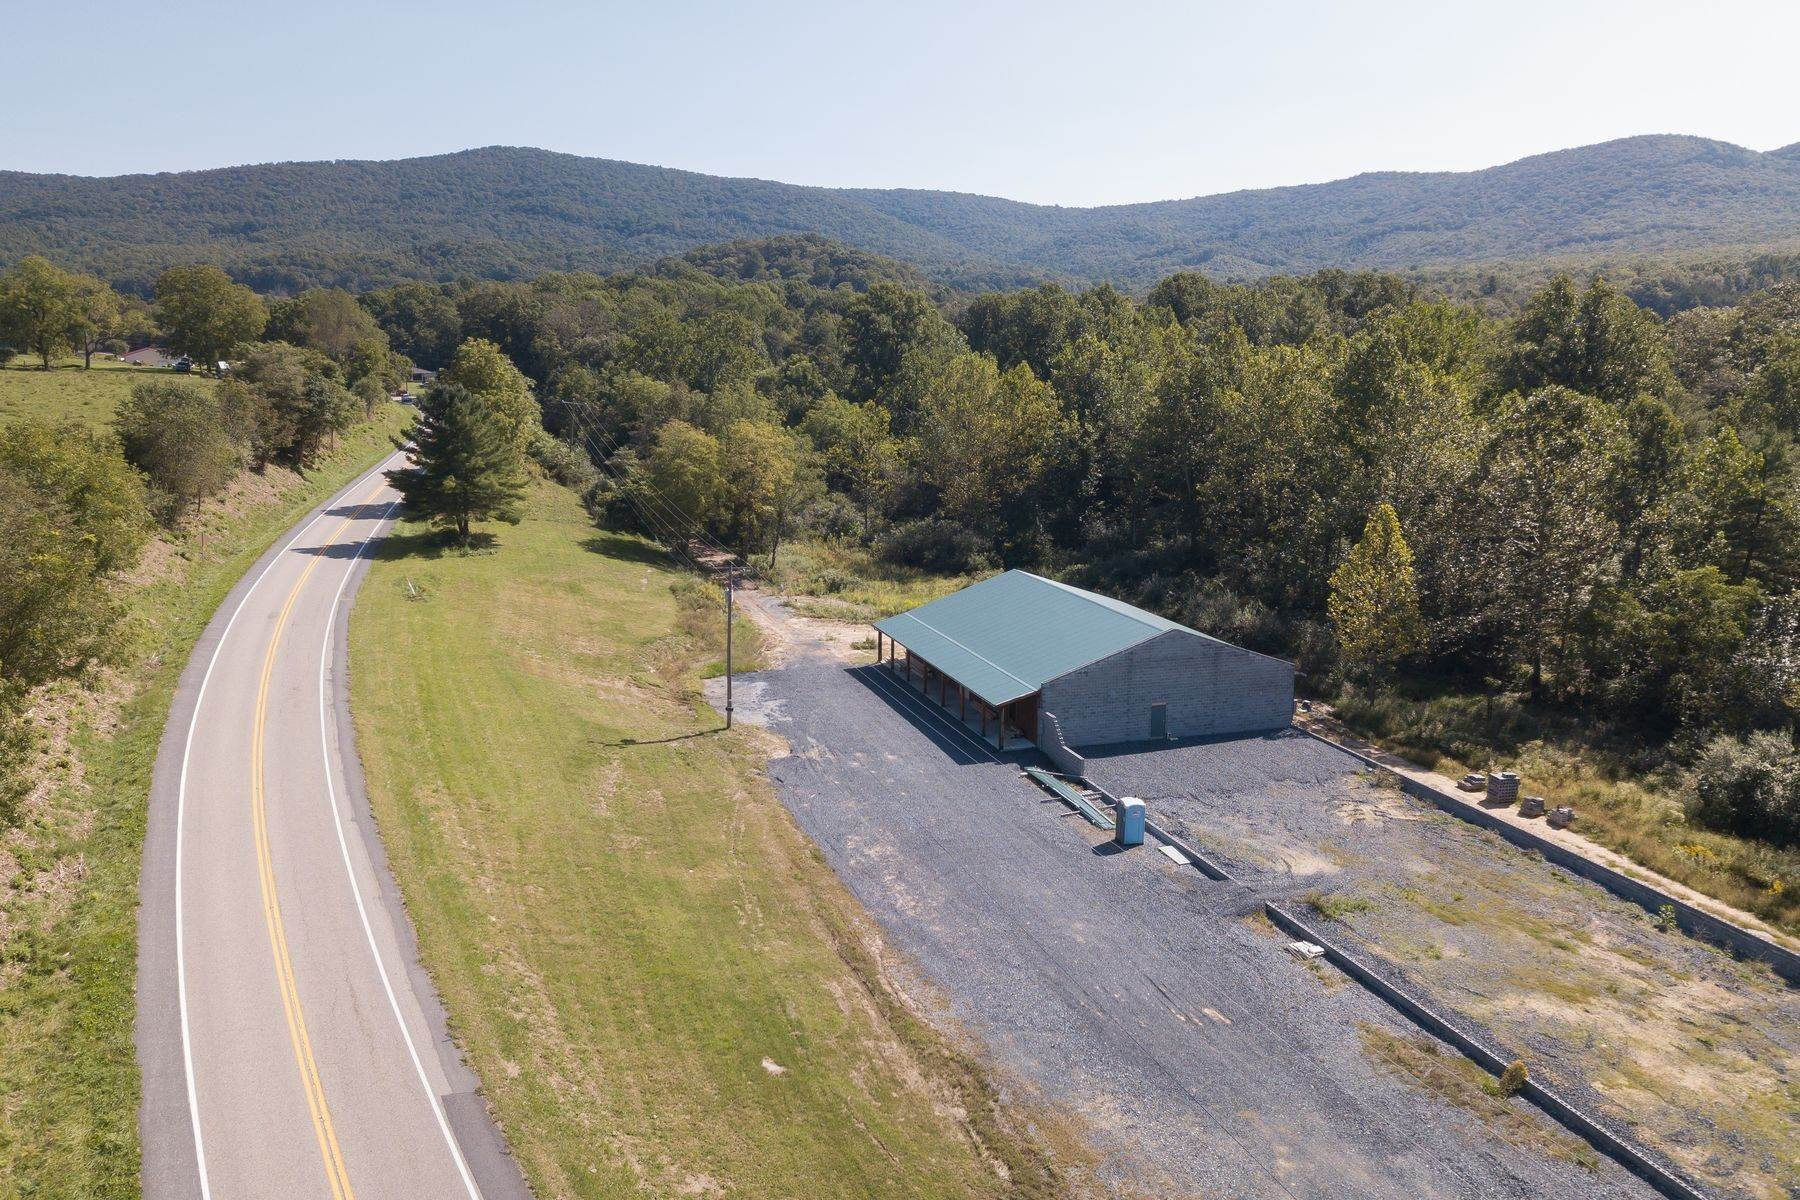 Commercial for Sale at 2570 Little Calf Pasture Highway 2570 Little Calf Pasture Hwy Swoope, Virginia 24479 United States